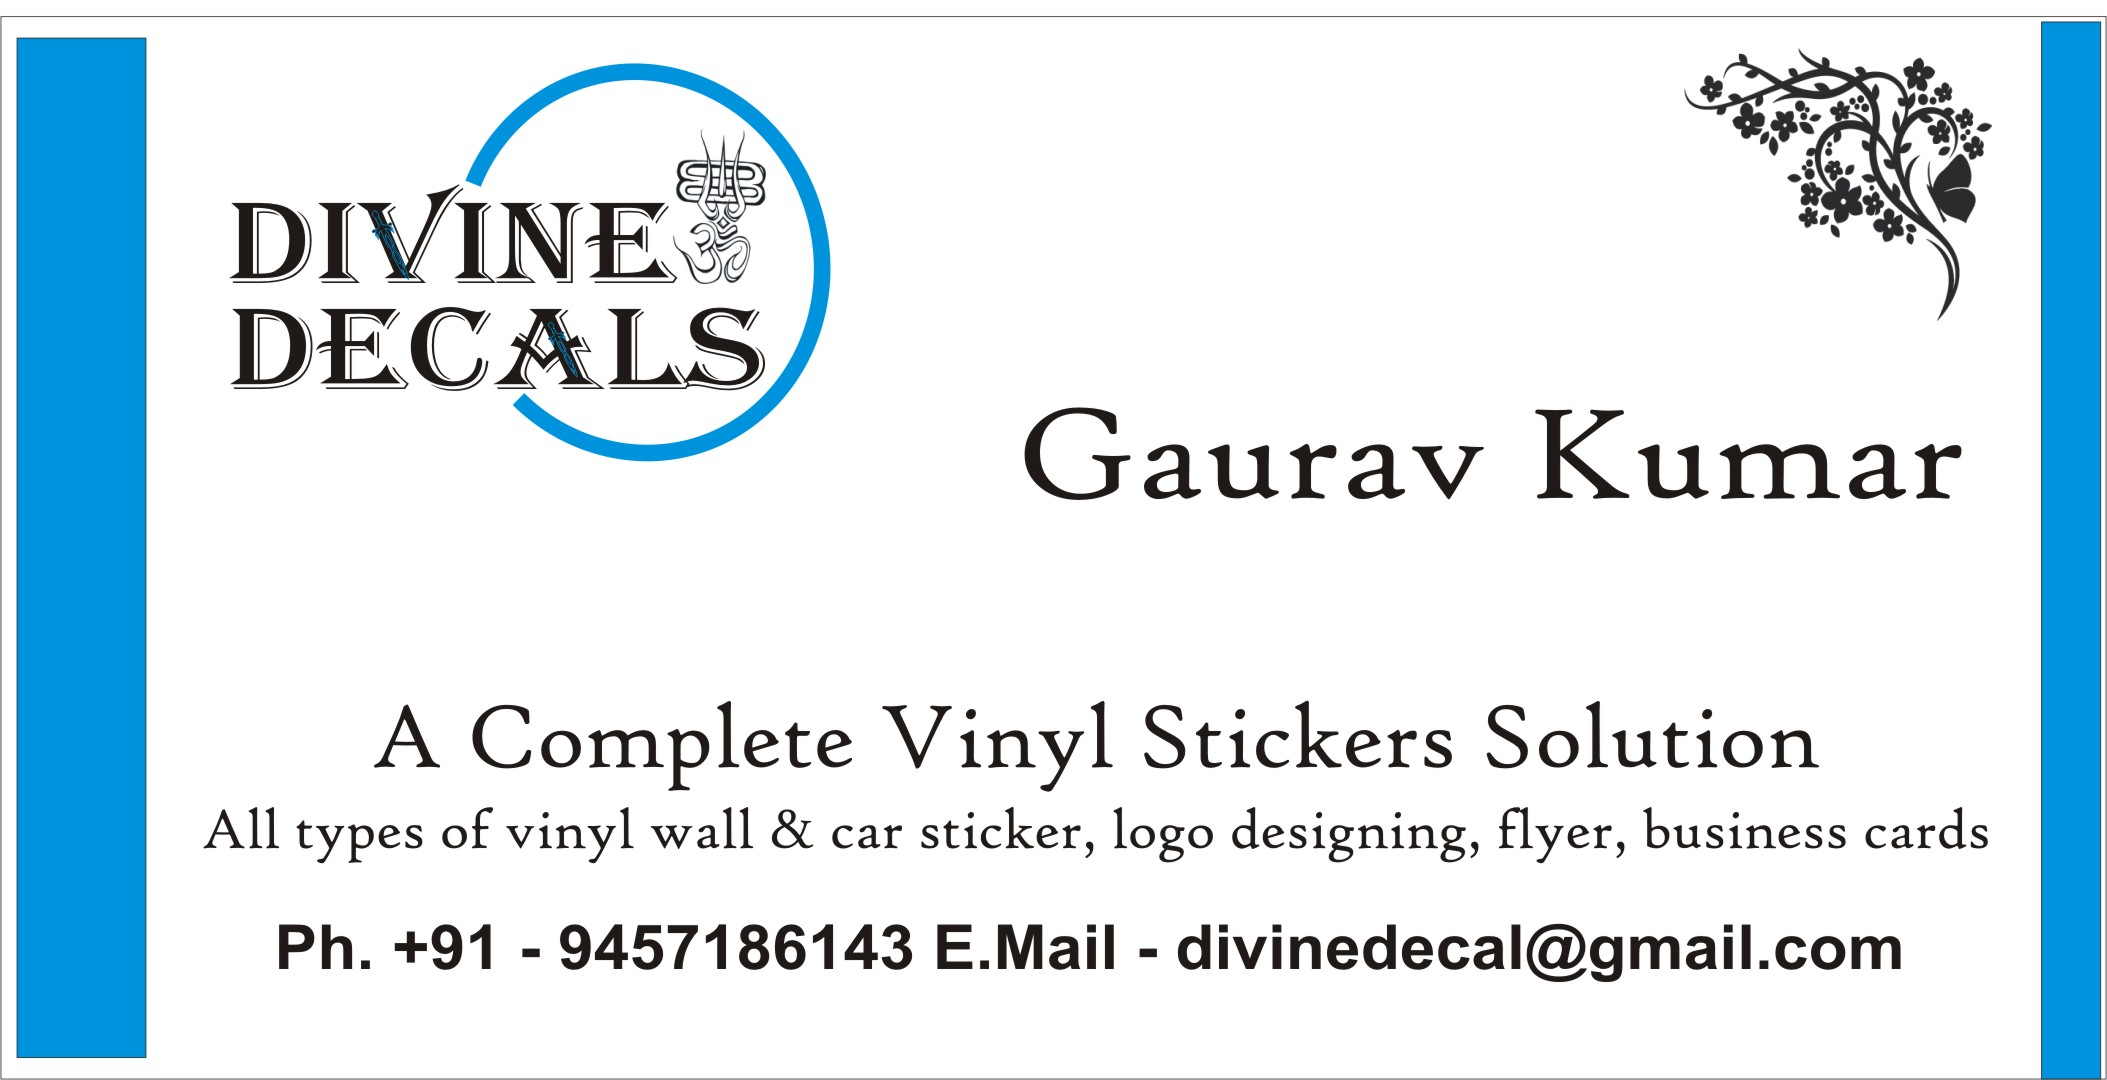 design a logo, visiting cards, flyers, vinyl stickers